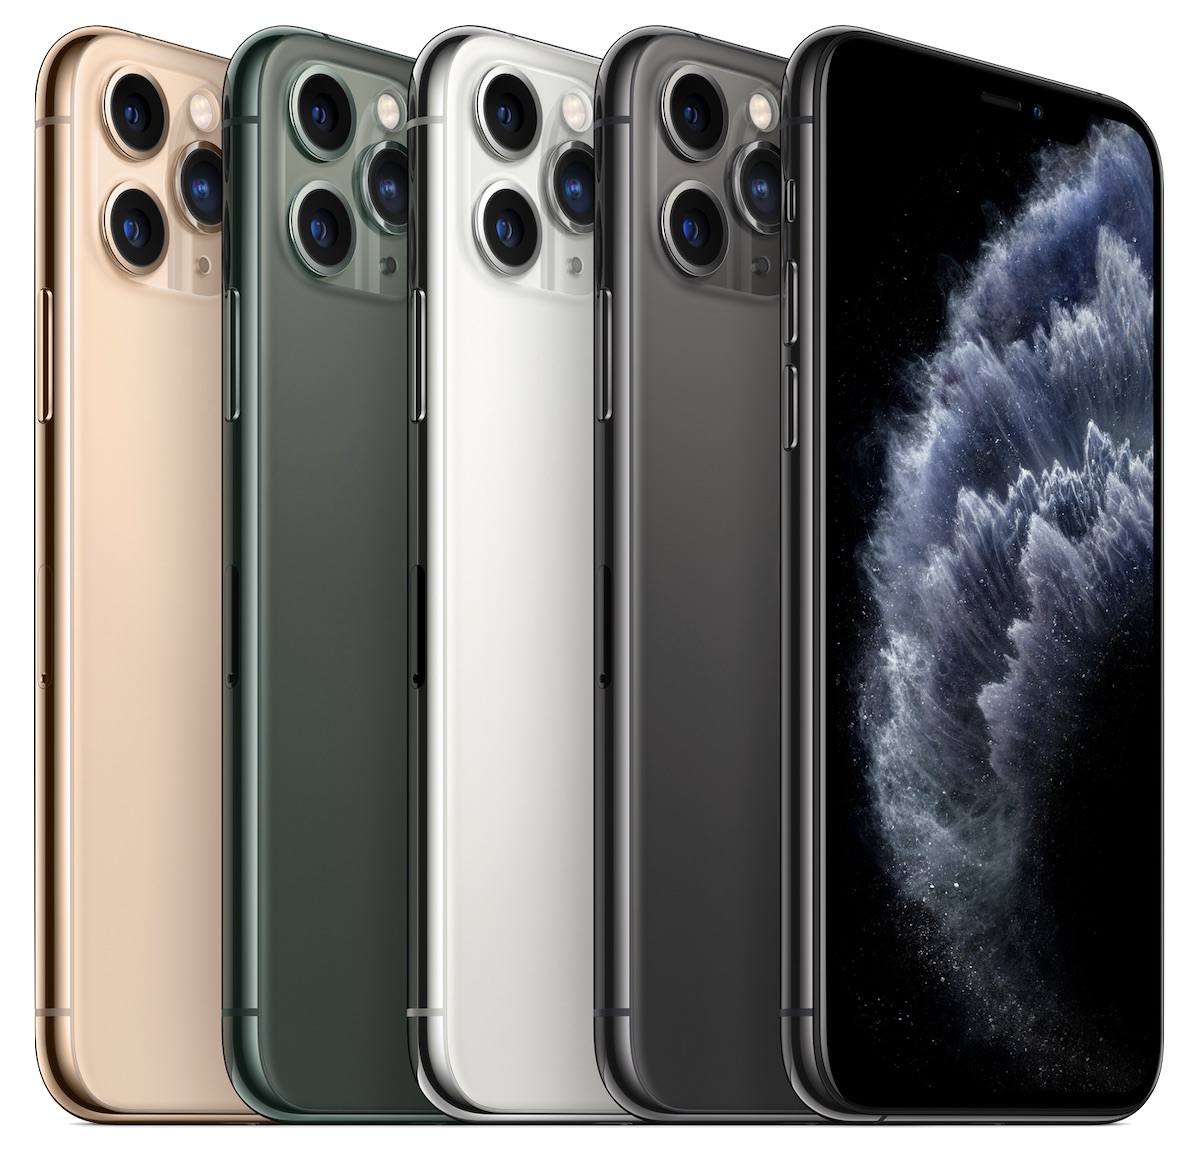 iPhone 11 vs. iPhone 11 Pro: Which to Buy? - MacRumors